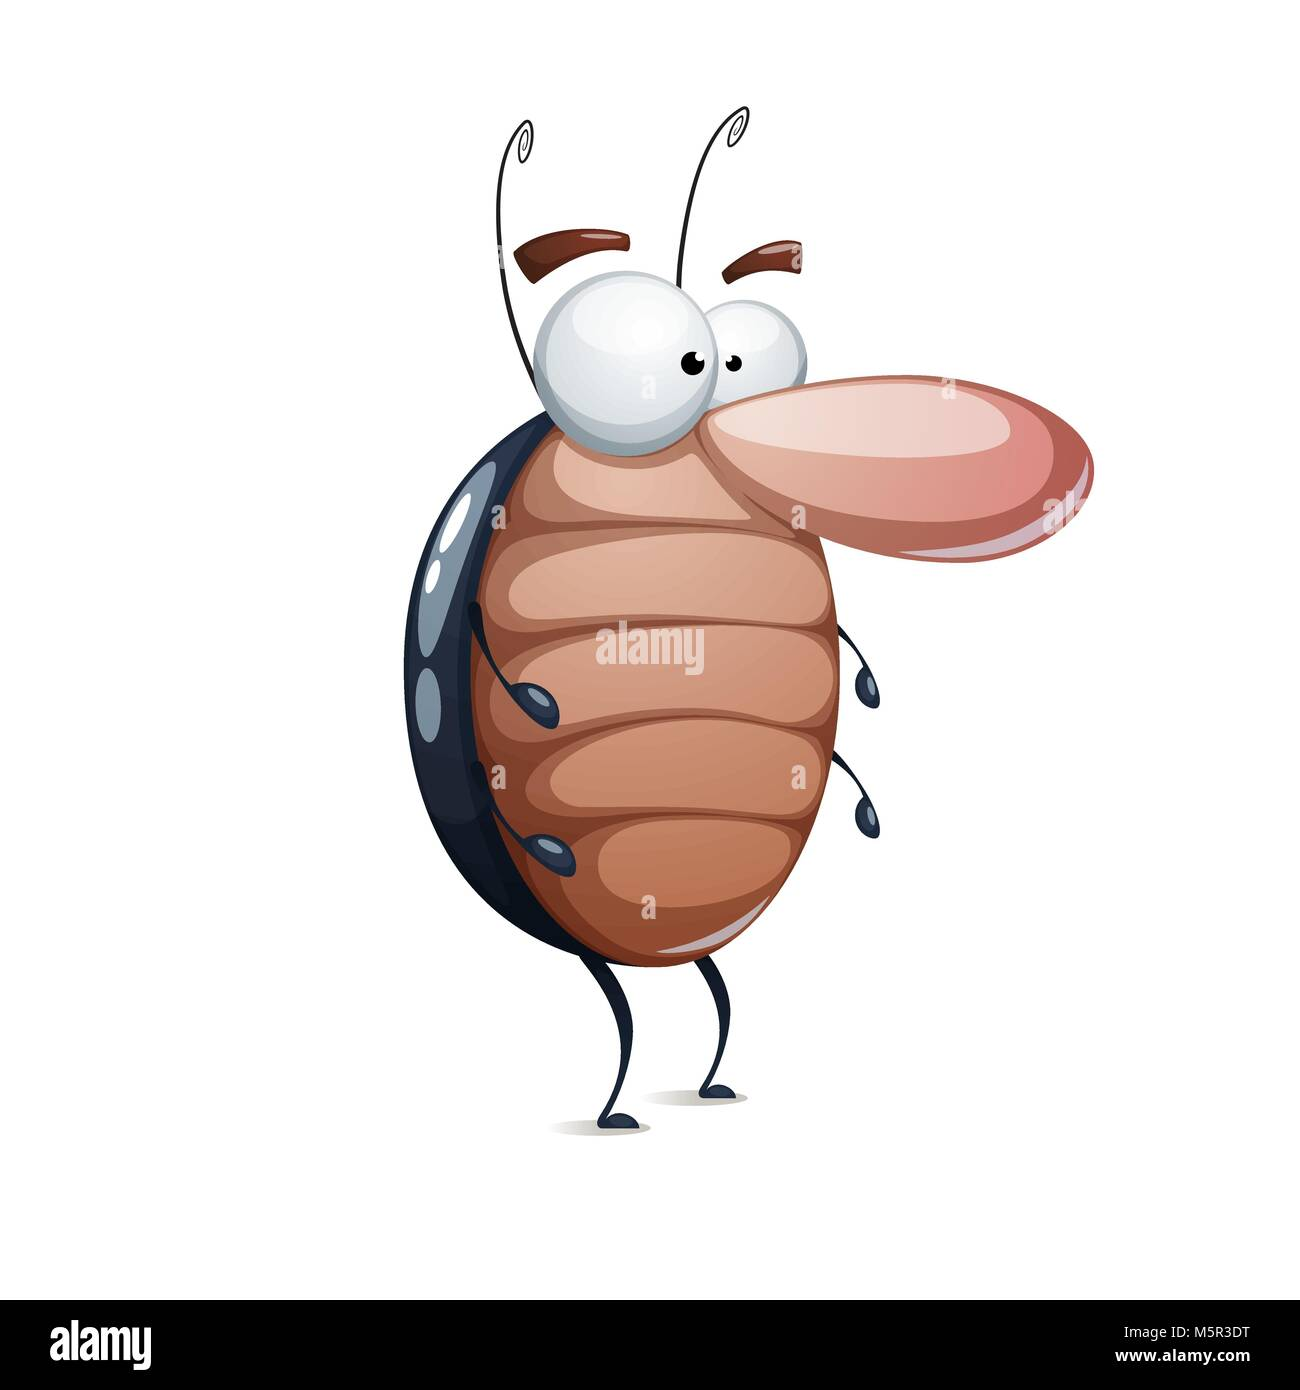 Vector Illustration Cartoon Cockroach Stock Photos & Vector ...